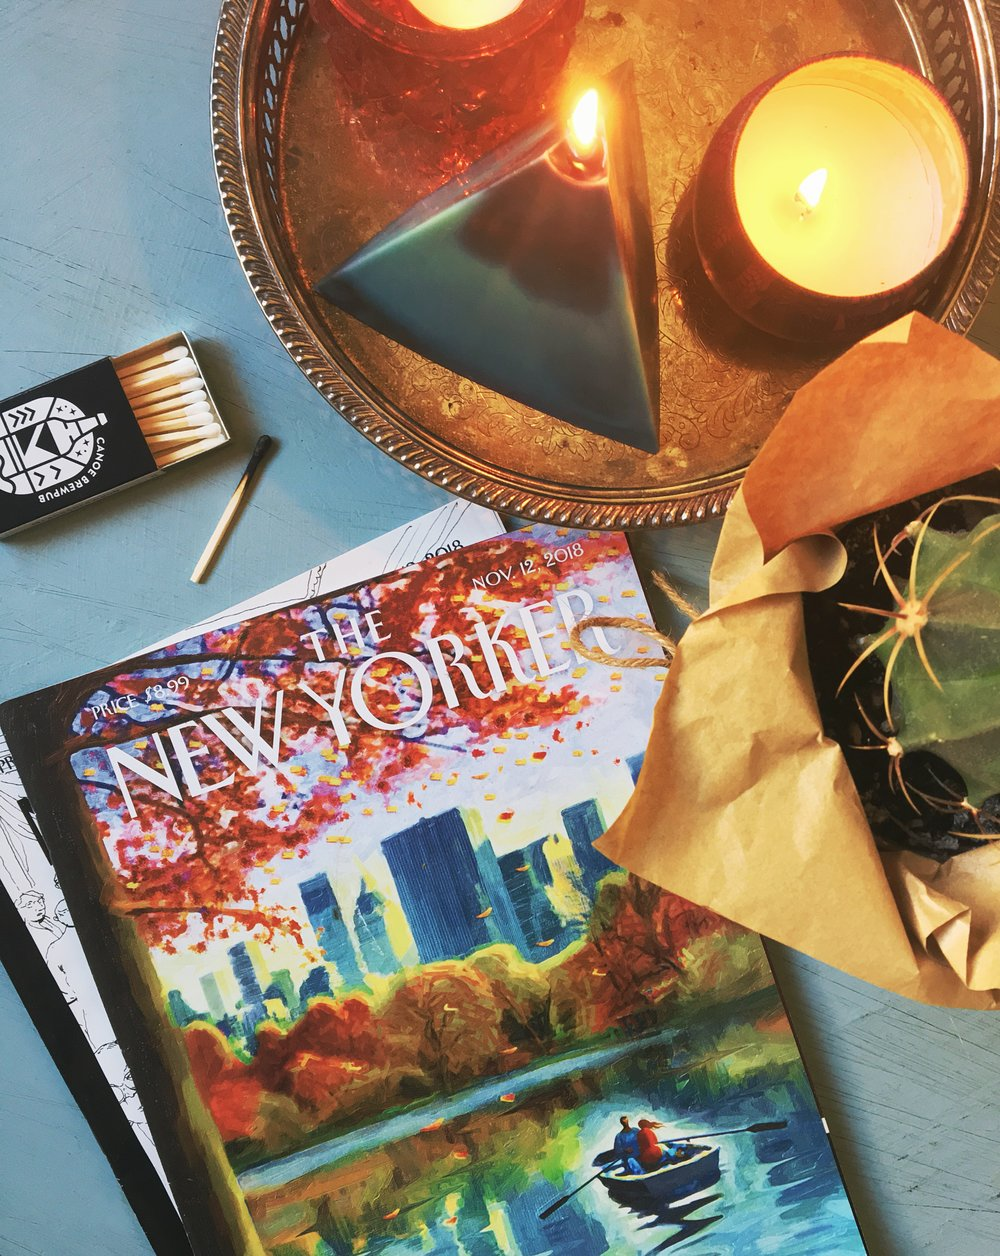 The New Yorker magazine sitting on a coffee table beside a book of matches a pyramid candle and a cactus female lifestyle blogger freelance writer Canadian lifestyle blogger feminist blogger